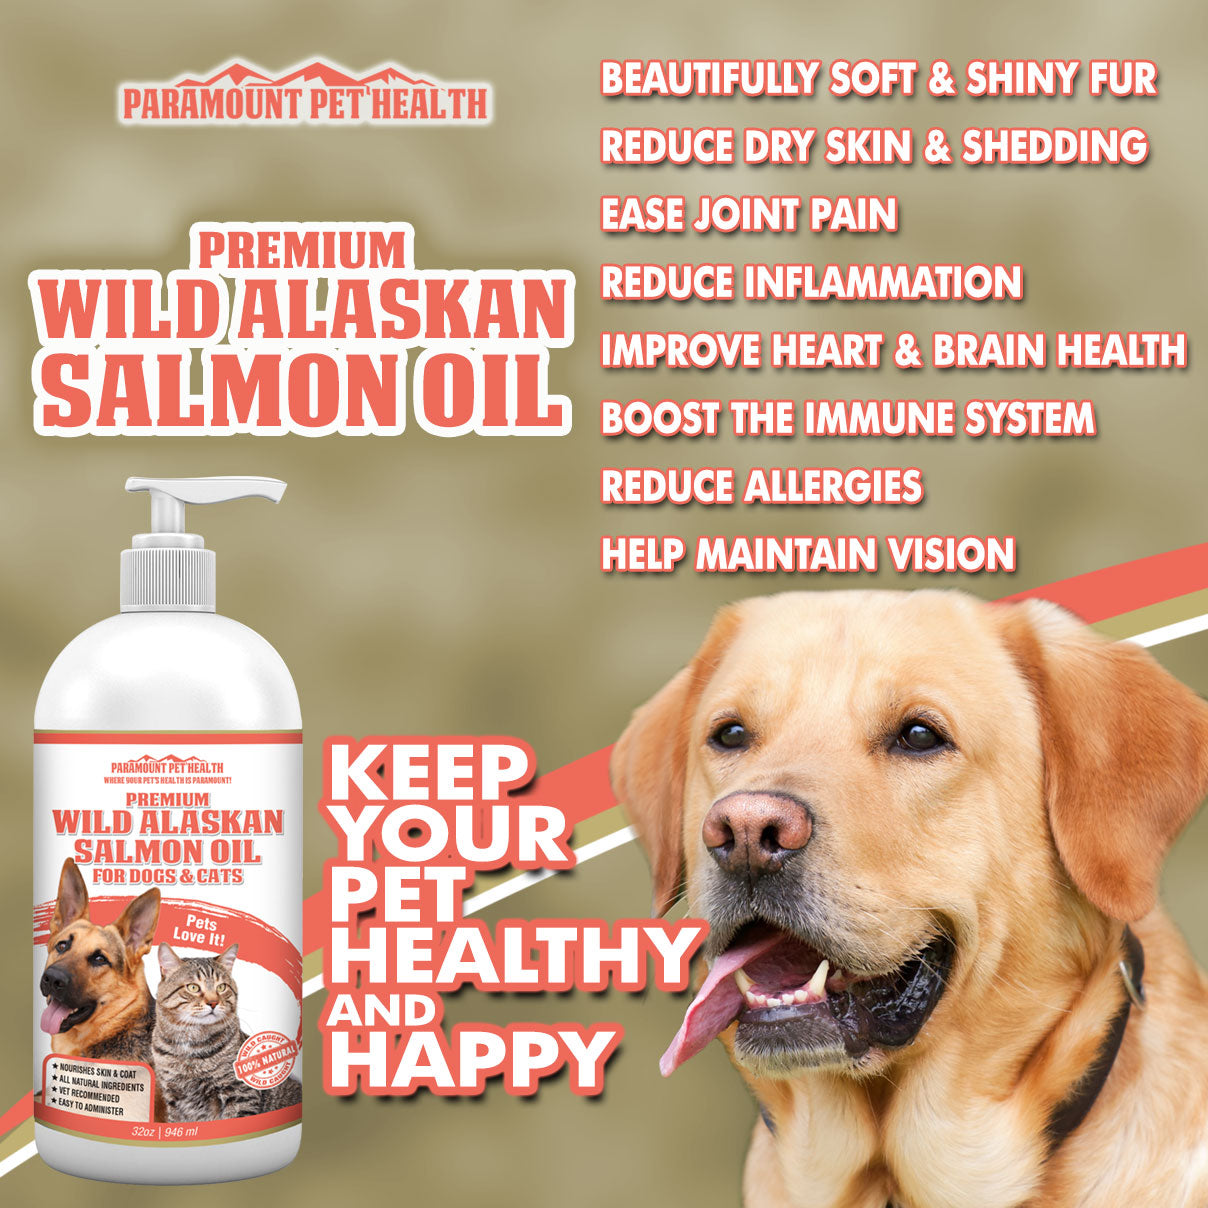 Wild Alaskan Salmon Oil for Dogs and Cats Benefits